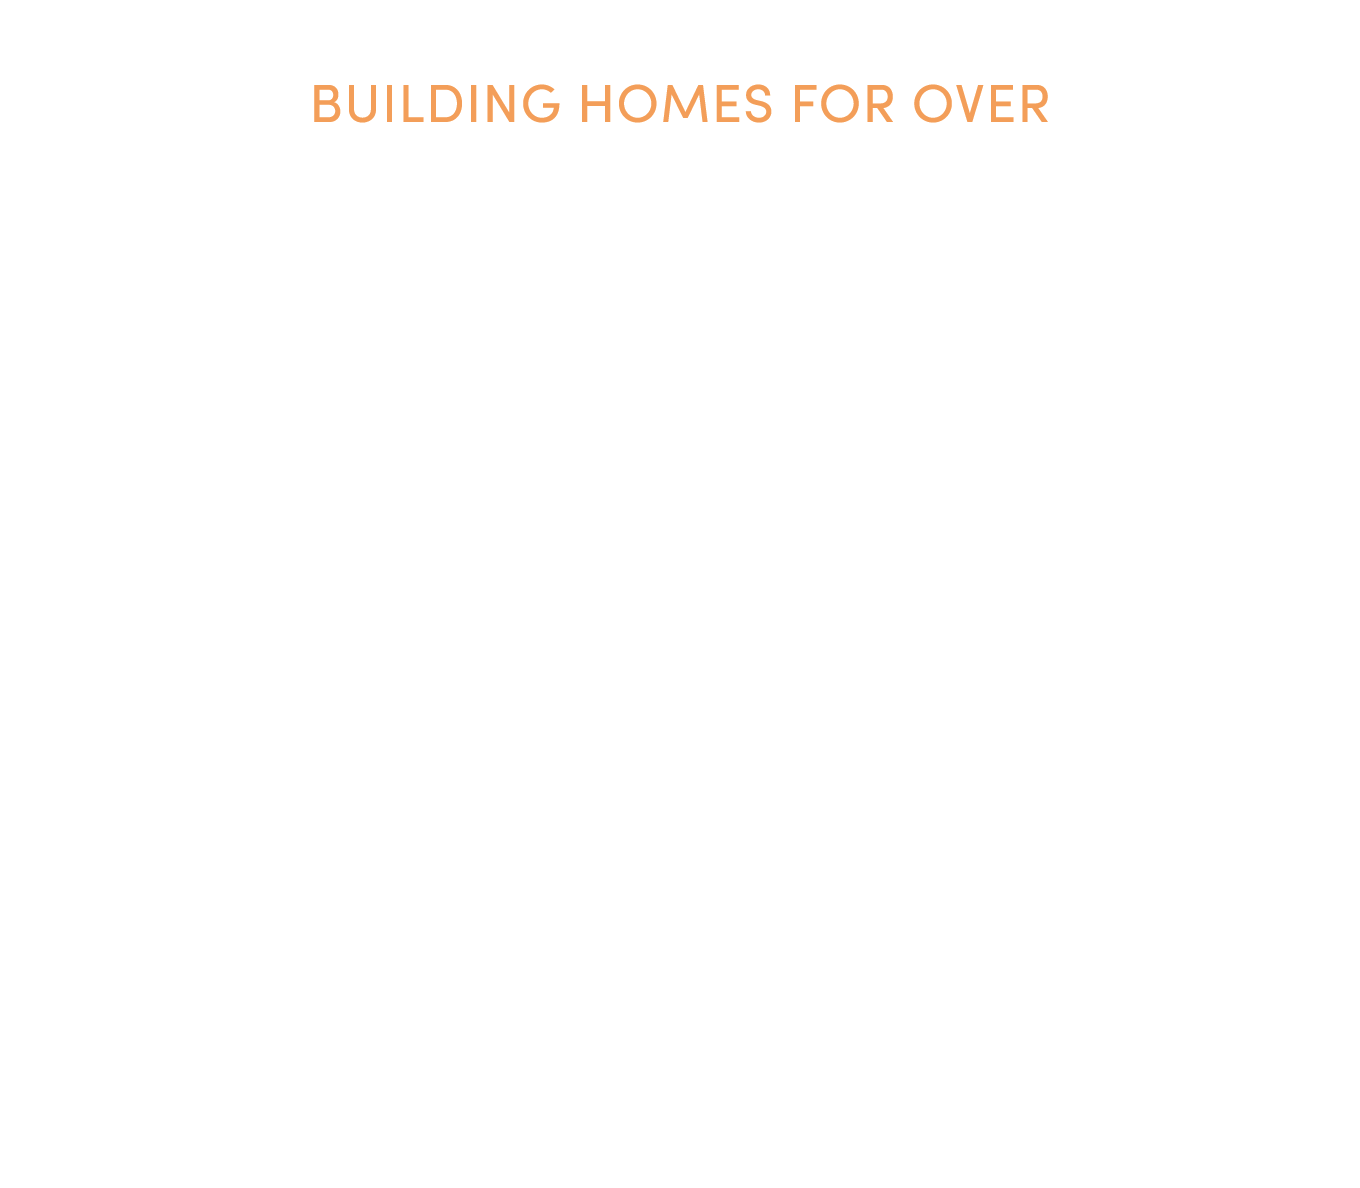 Building Homes for Over 25 Years